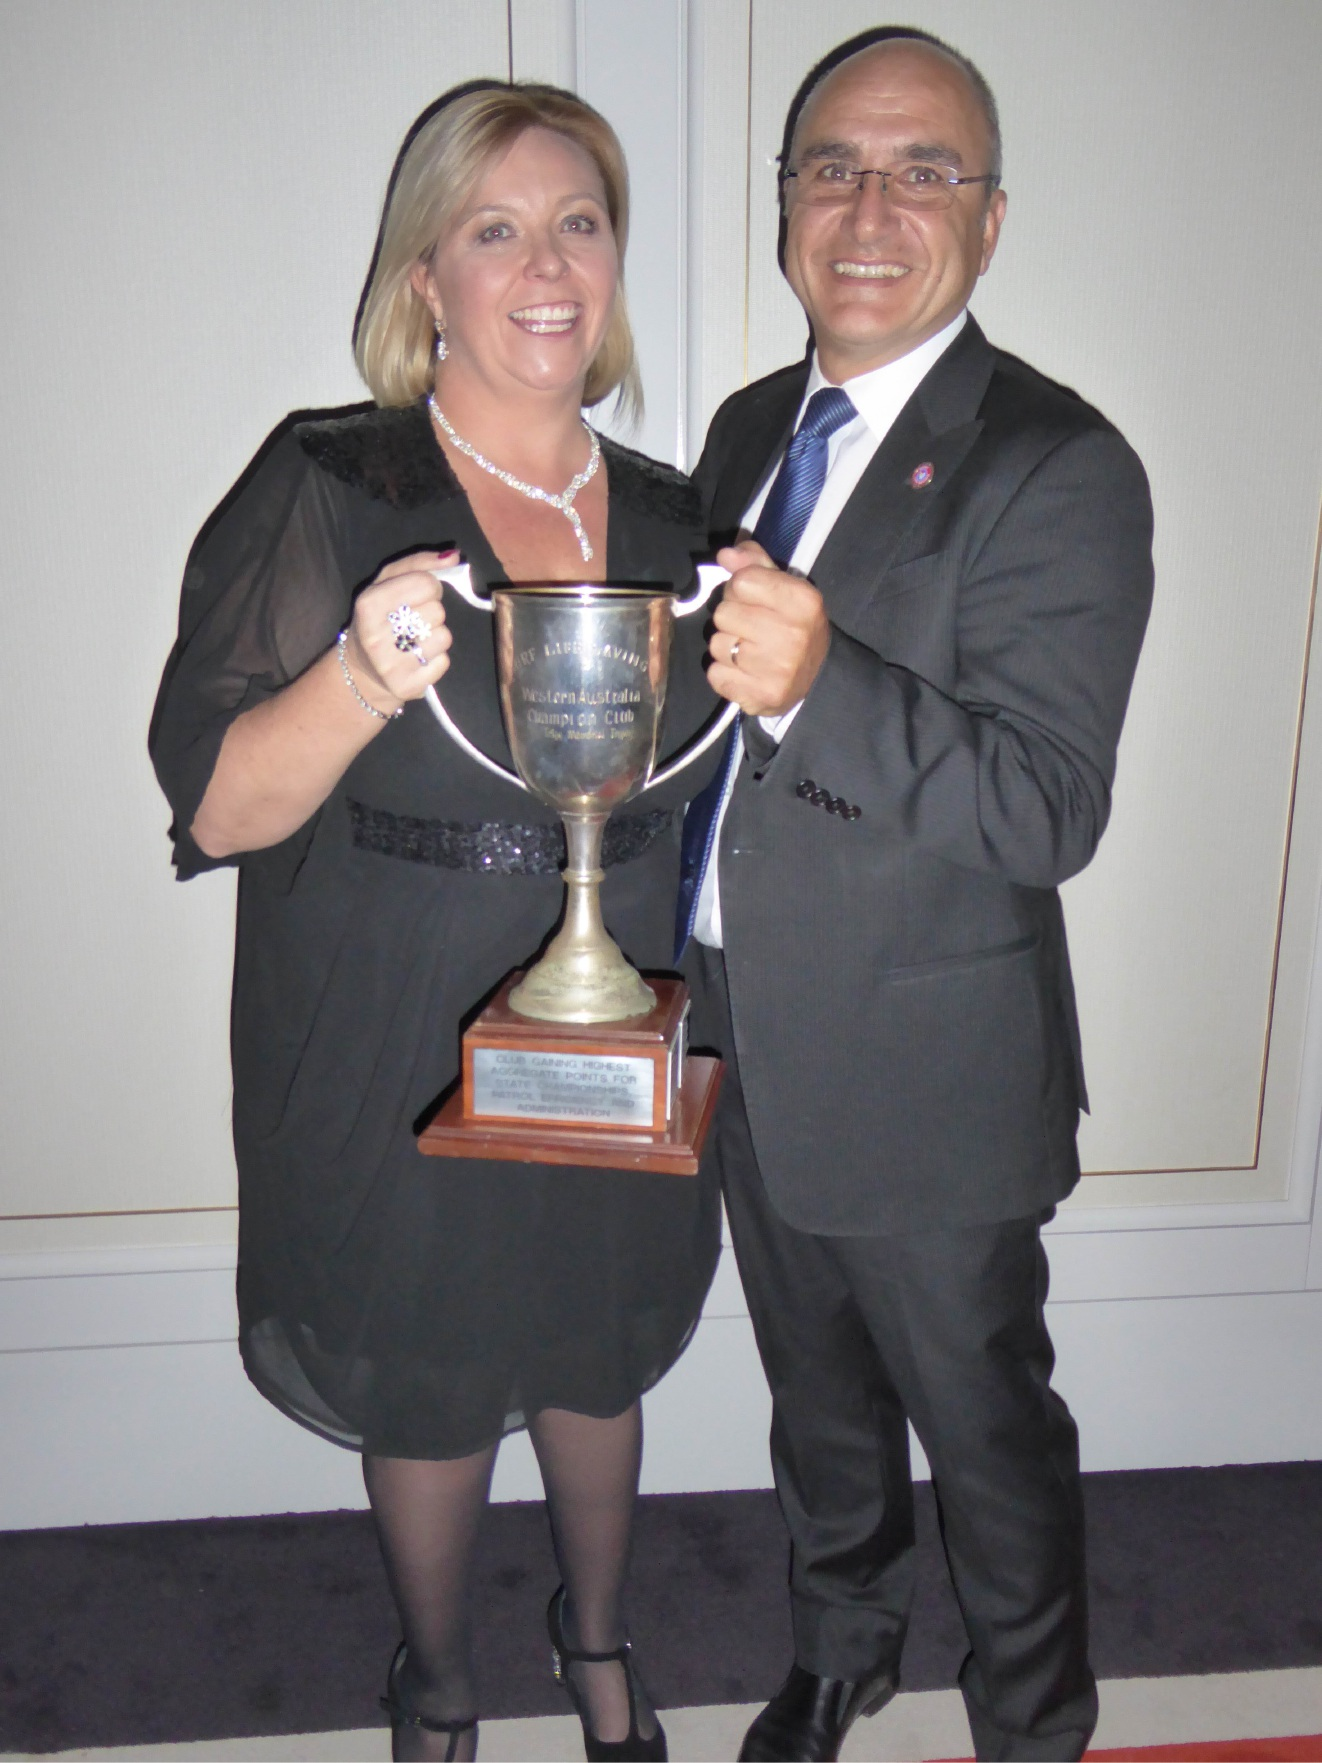 Building committee chairwoman Vicki Rasmussen and president Carlo Tenaglia. Right: Sorrento SLSC winner Garry Bunford.